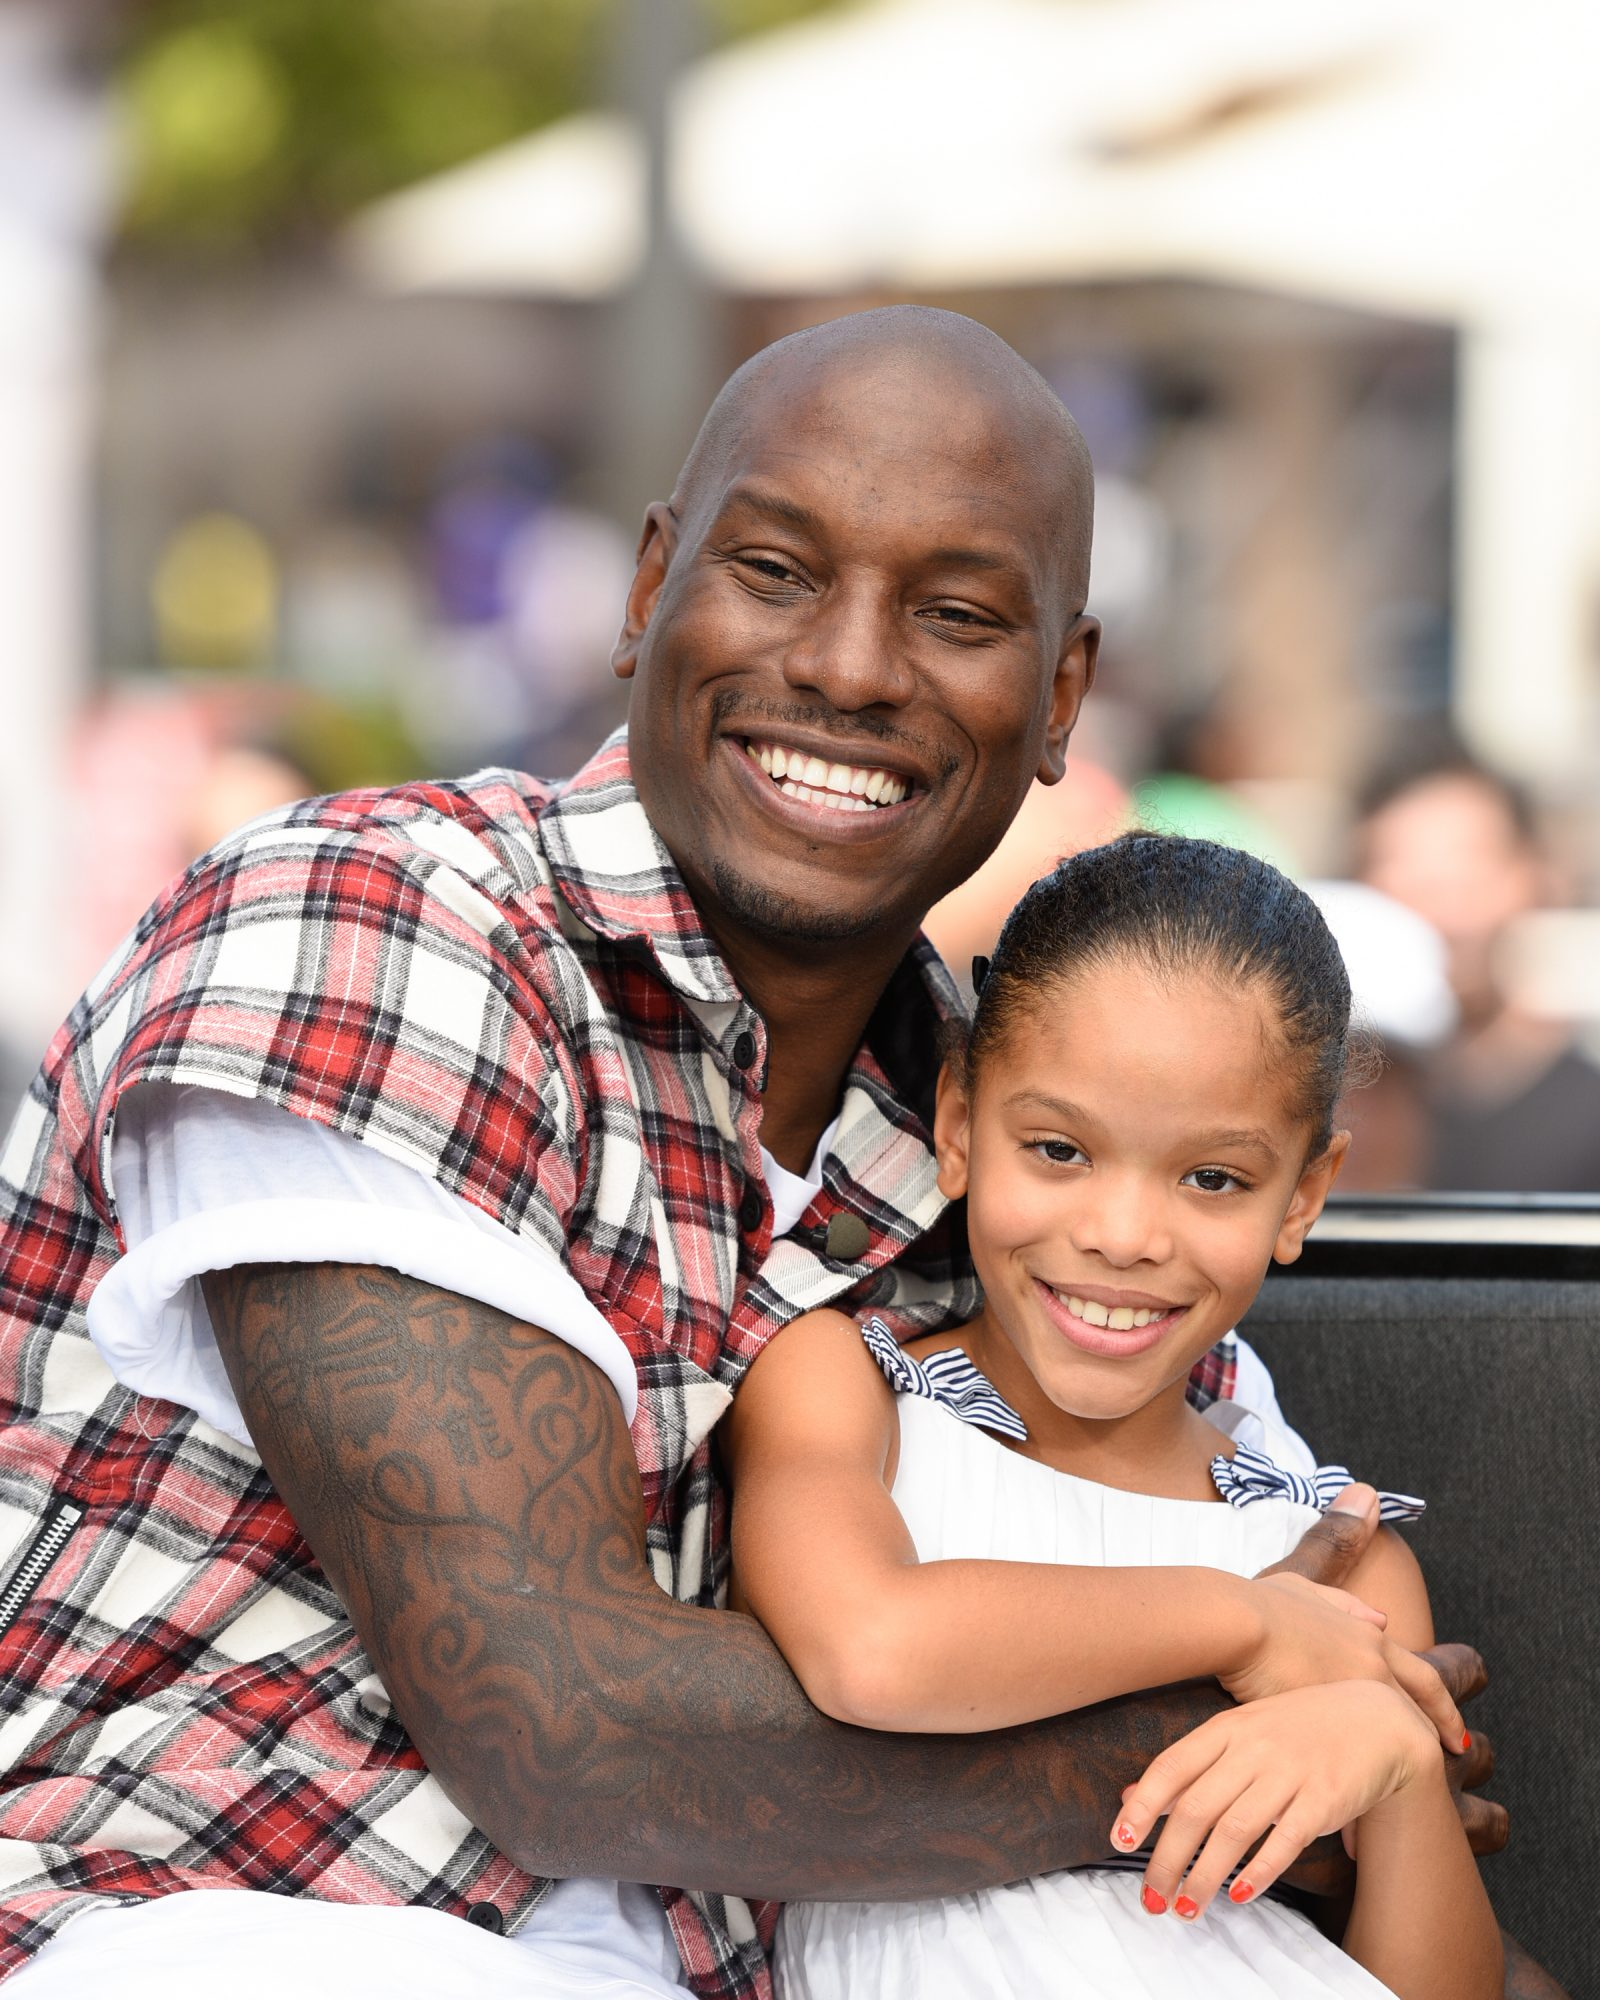 Tyrese Gibson (L) and his daughter Shayla Somer Gibson visit